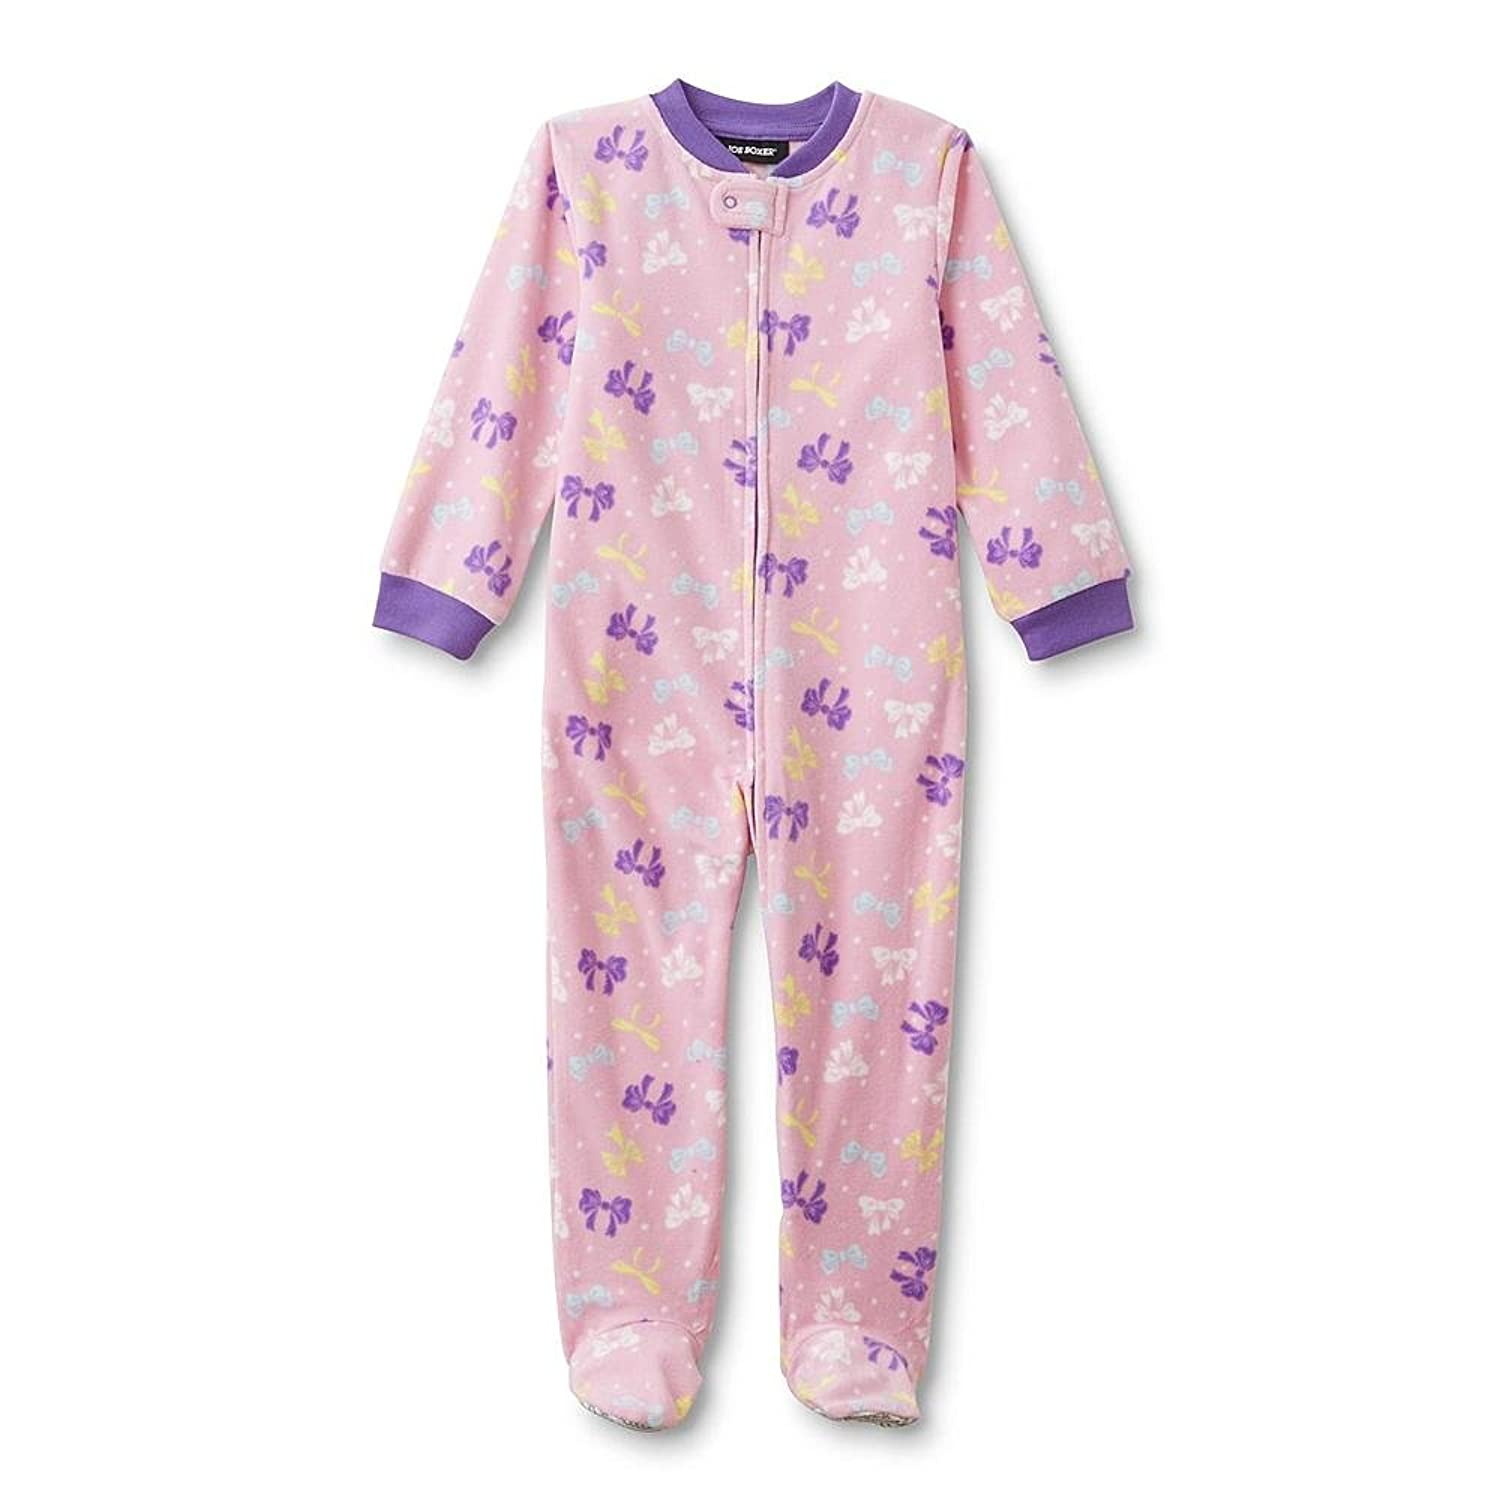 69bf1e74f8 Joe Boxer Infant   Toddler Girls  Footed Sleeper Pajamas - Bow 12 Months